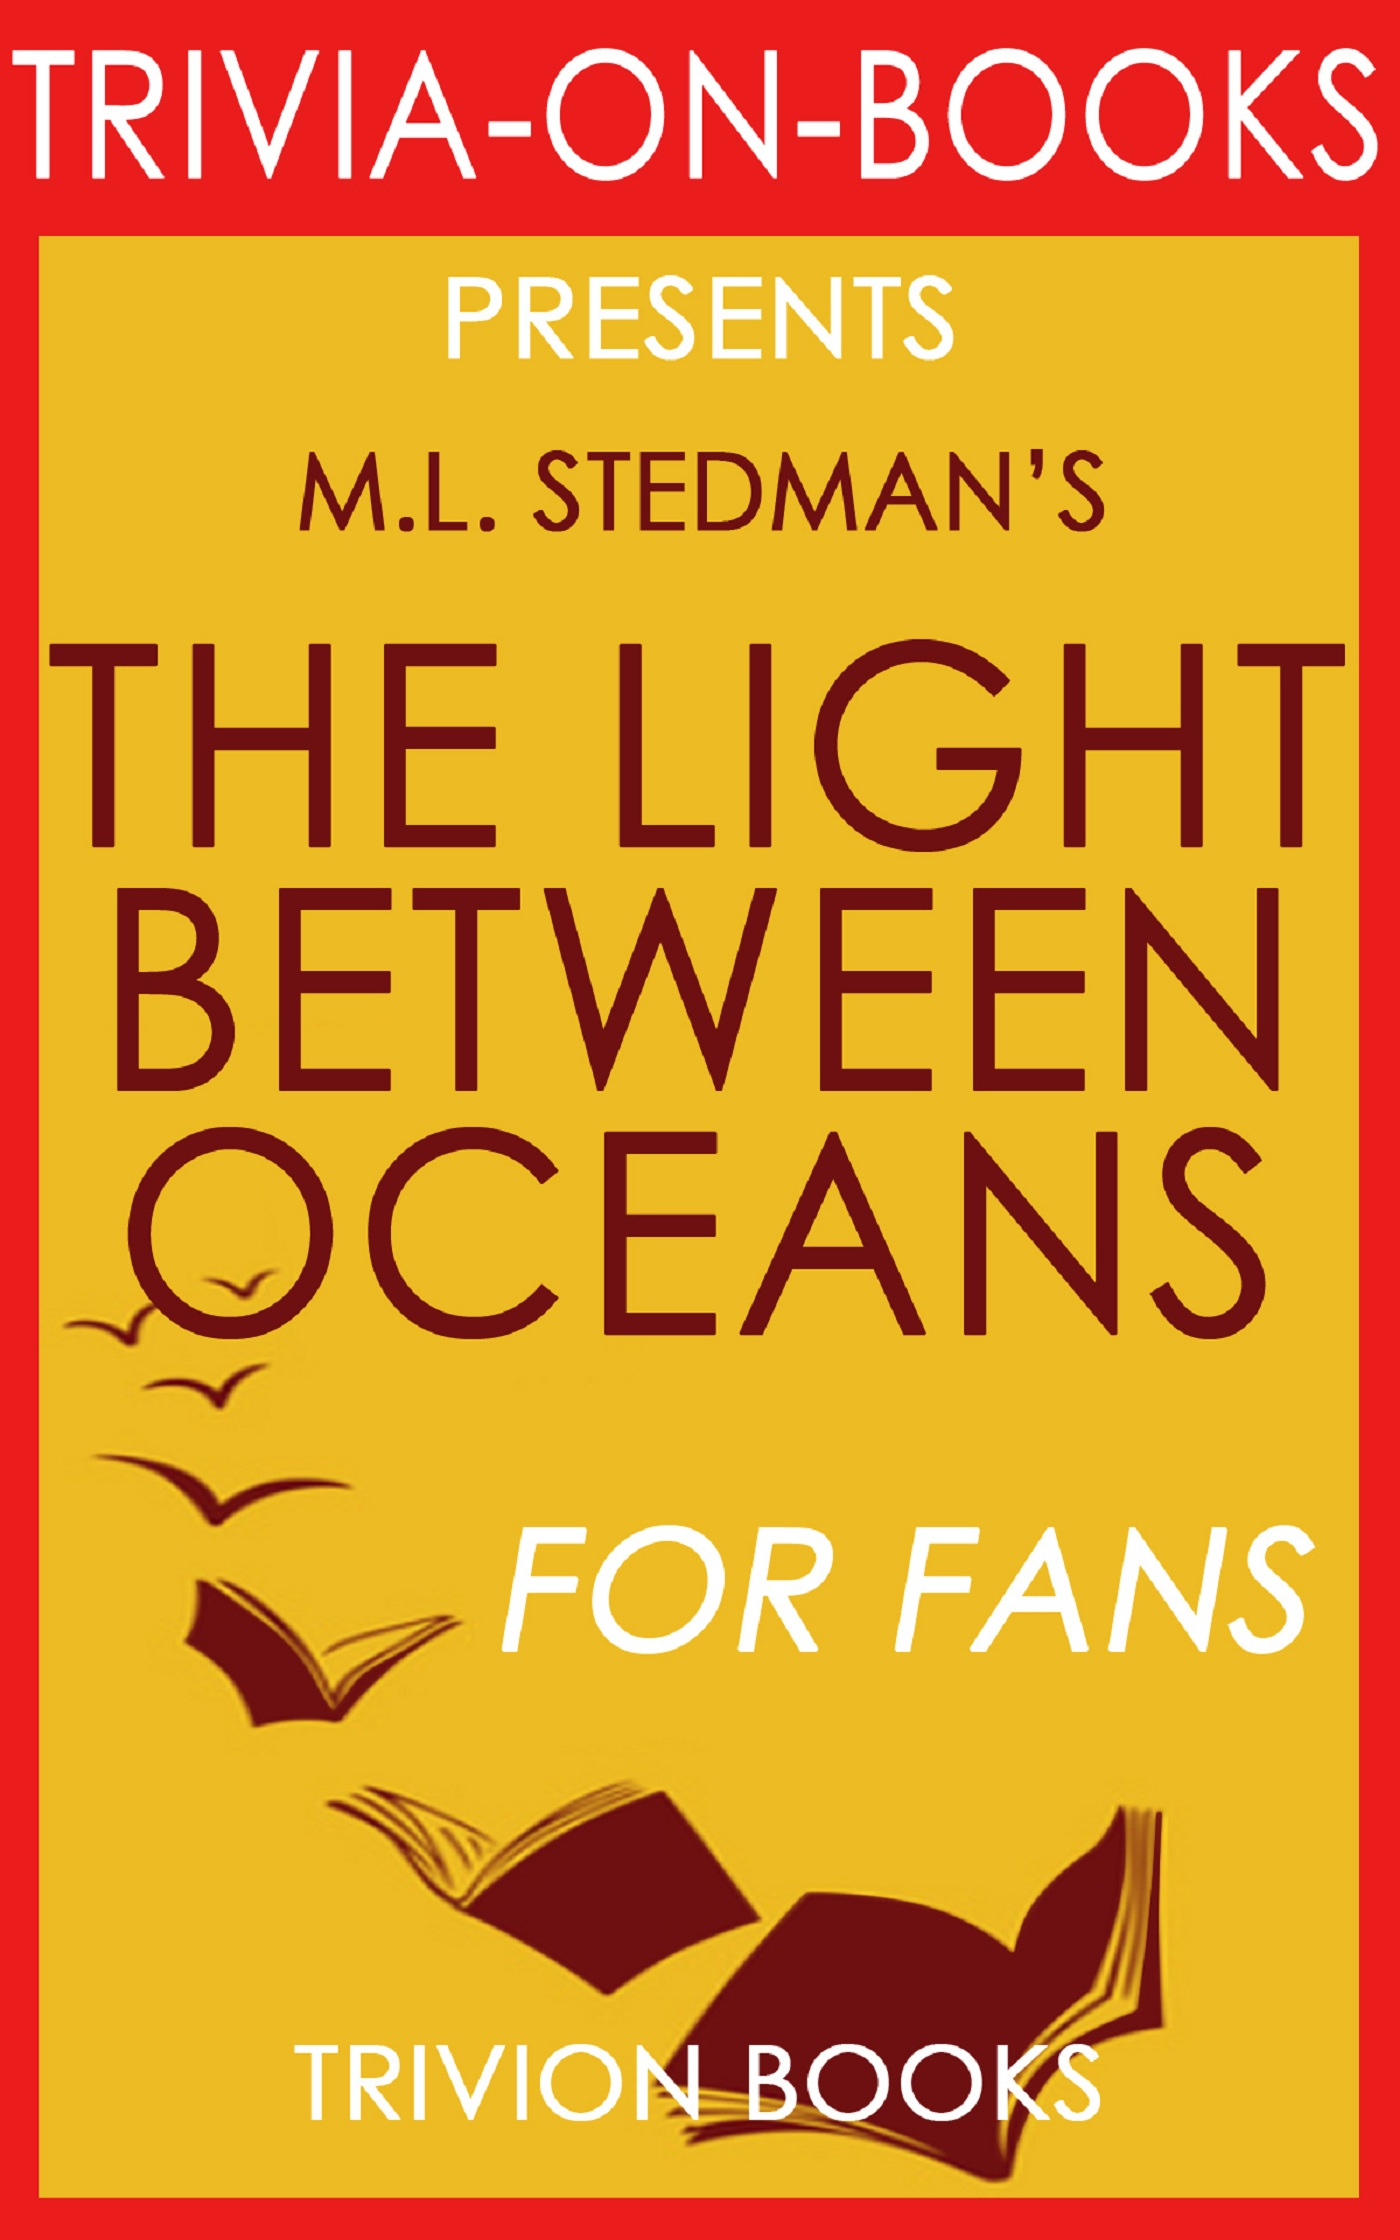 The Light Between Oceans: A Novel By M.L. Stedman (Trivia On Books)